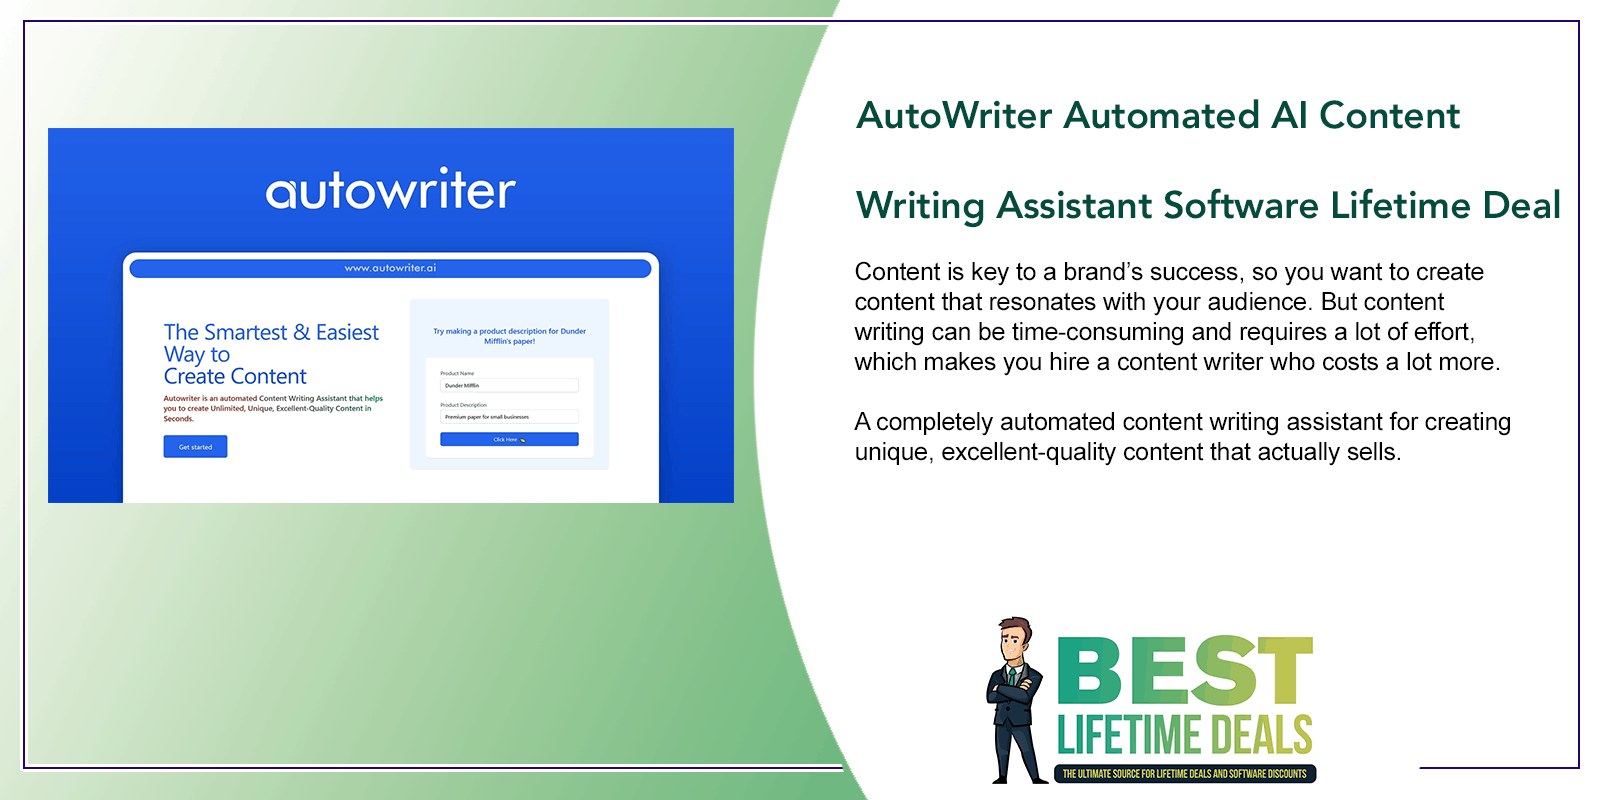 AutoWriter Automated AI Content Writing Assistant Software Featured Image